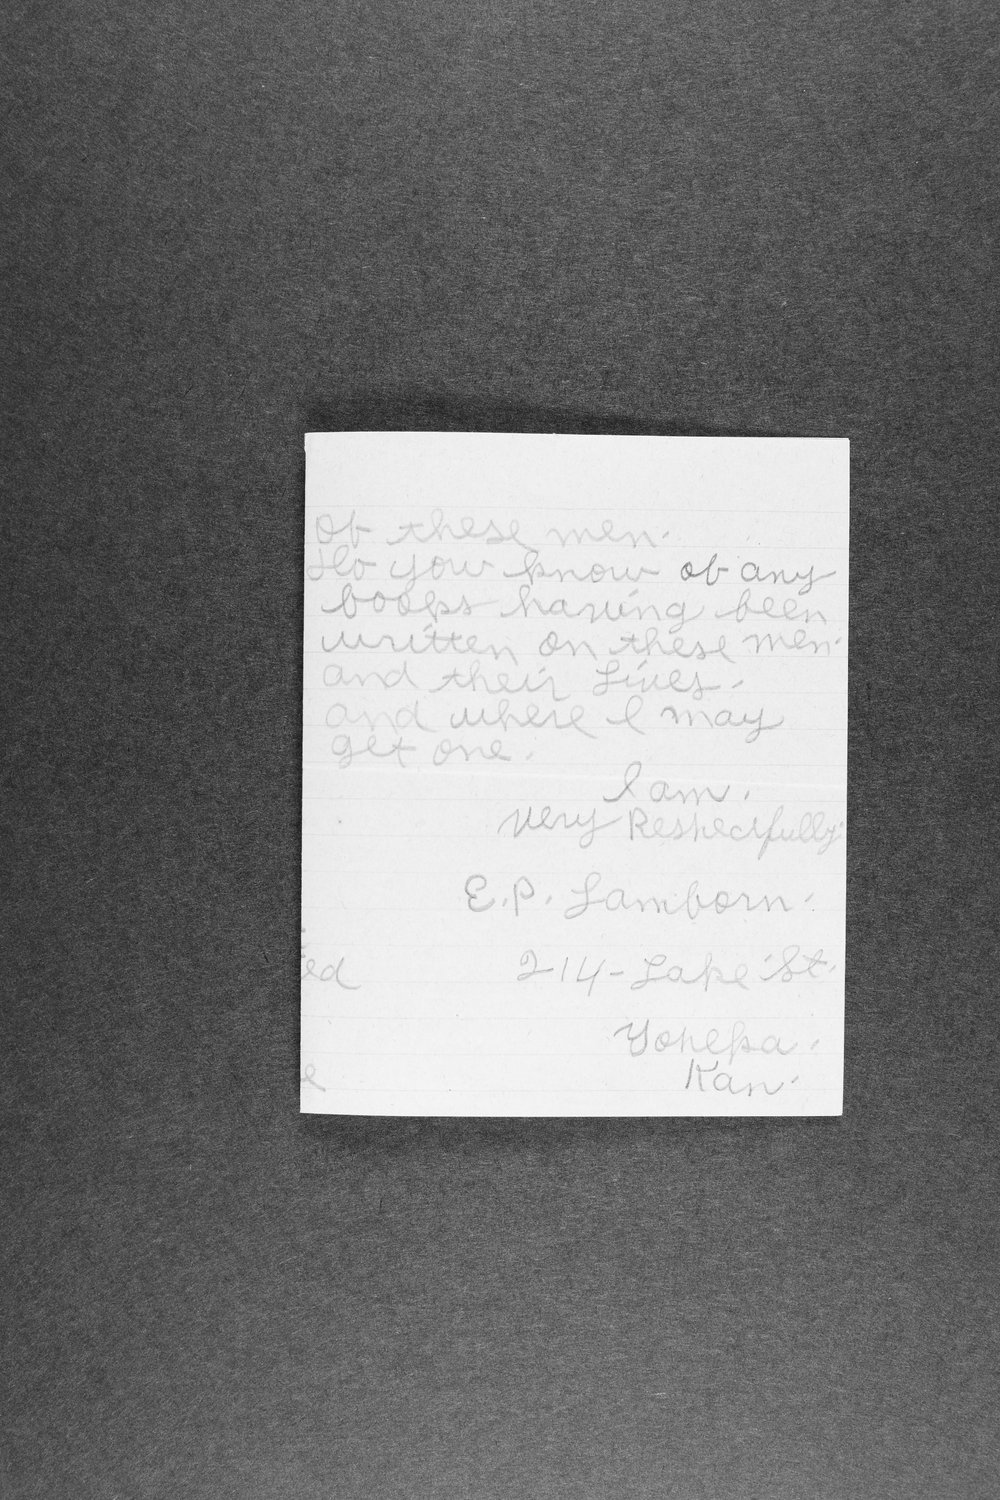 E. P. Lamborn correspondence and research papers - 12